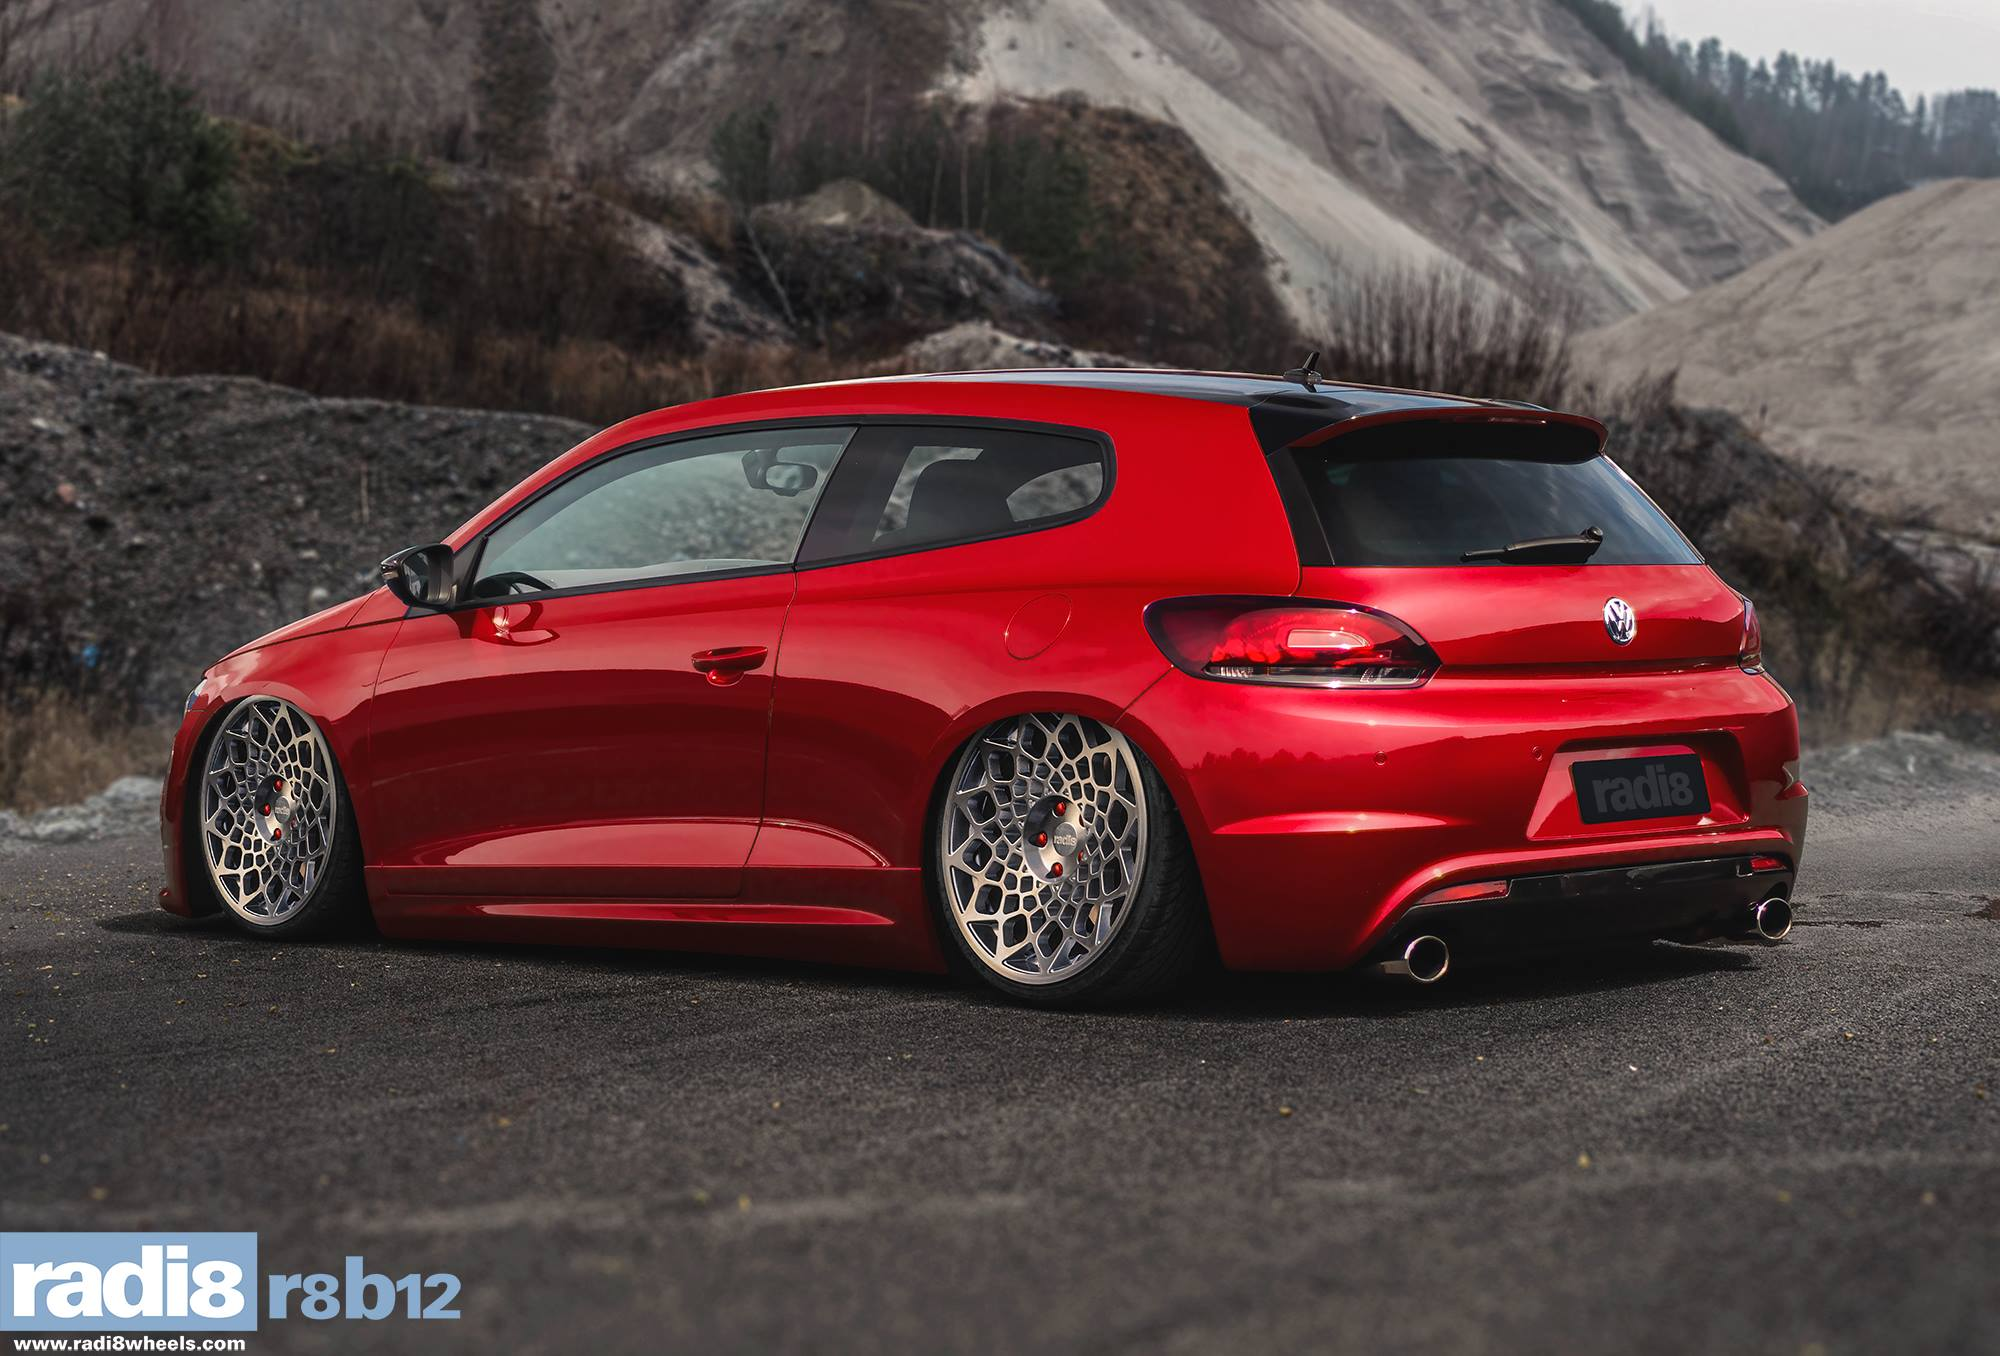 Radi8 R8B12 Wheels - Volkswagen Scirocco red